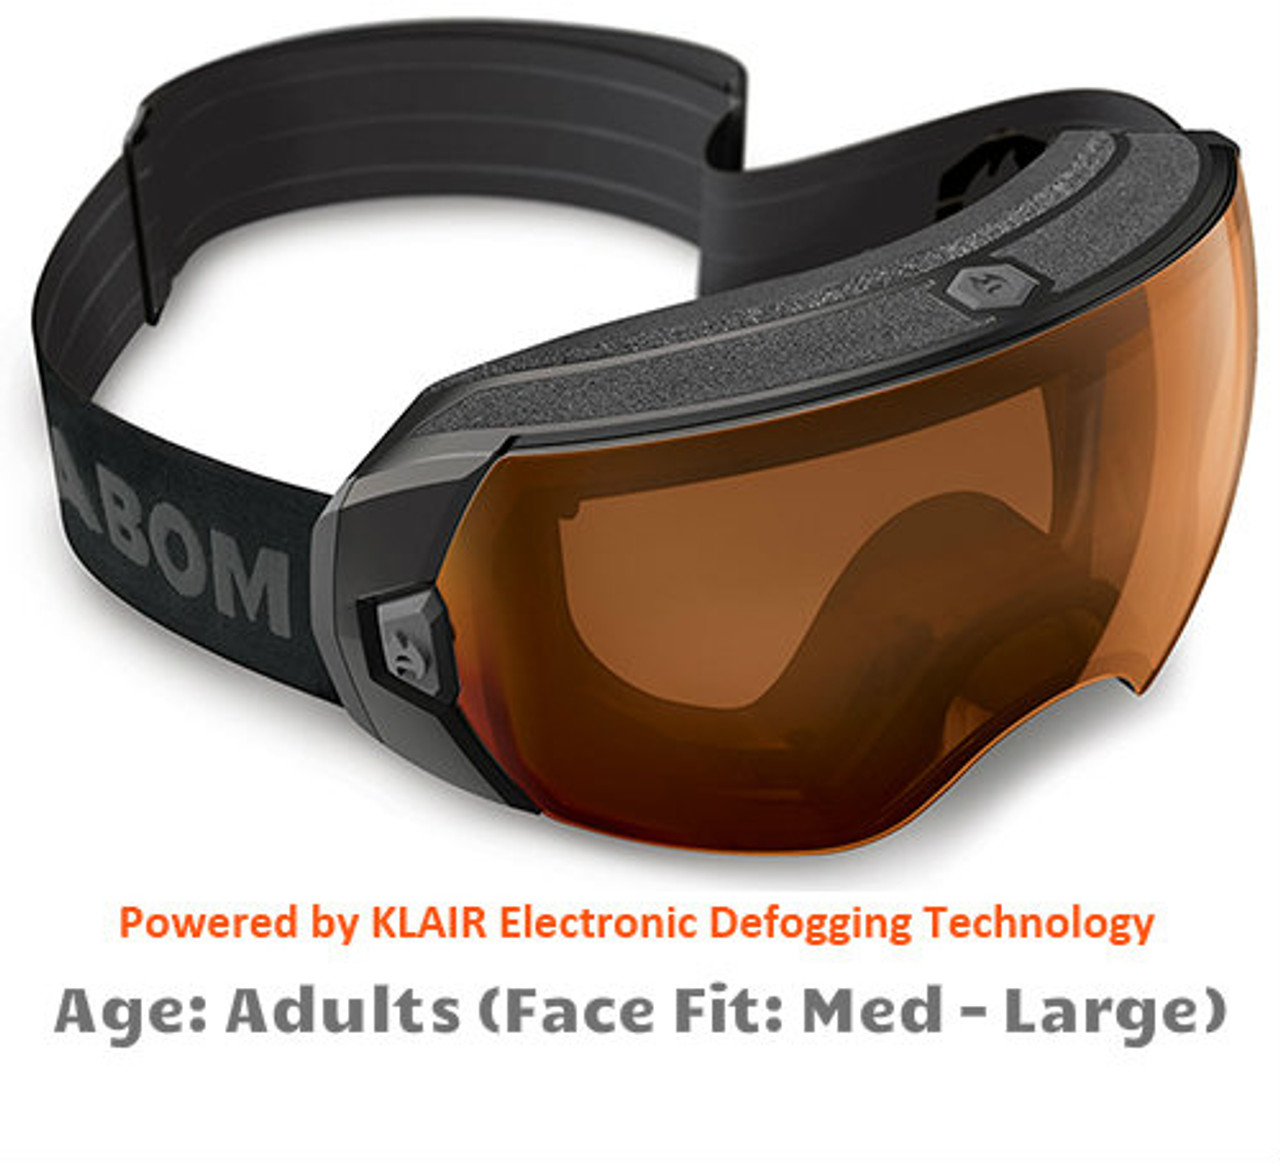 046e1c5ef948 Abom Heet Copper Dome Snow Goggles - Adult Sized Medium to Large Face Fit